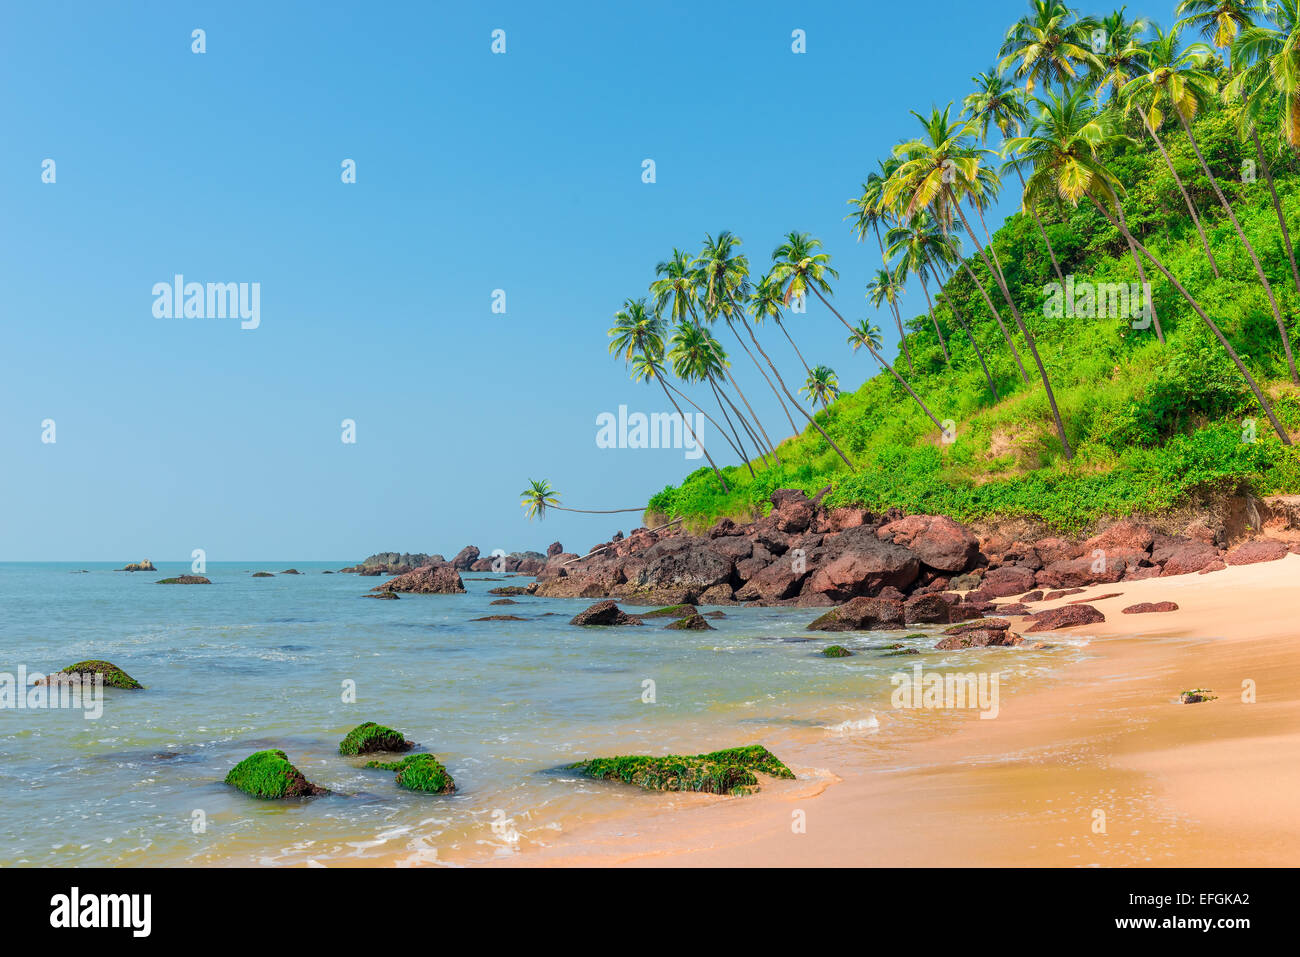 beautiful landscape in an exotic location shot day - Stock Image